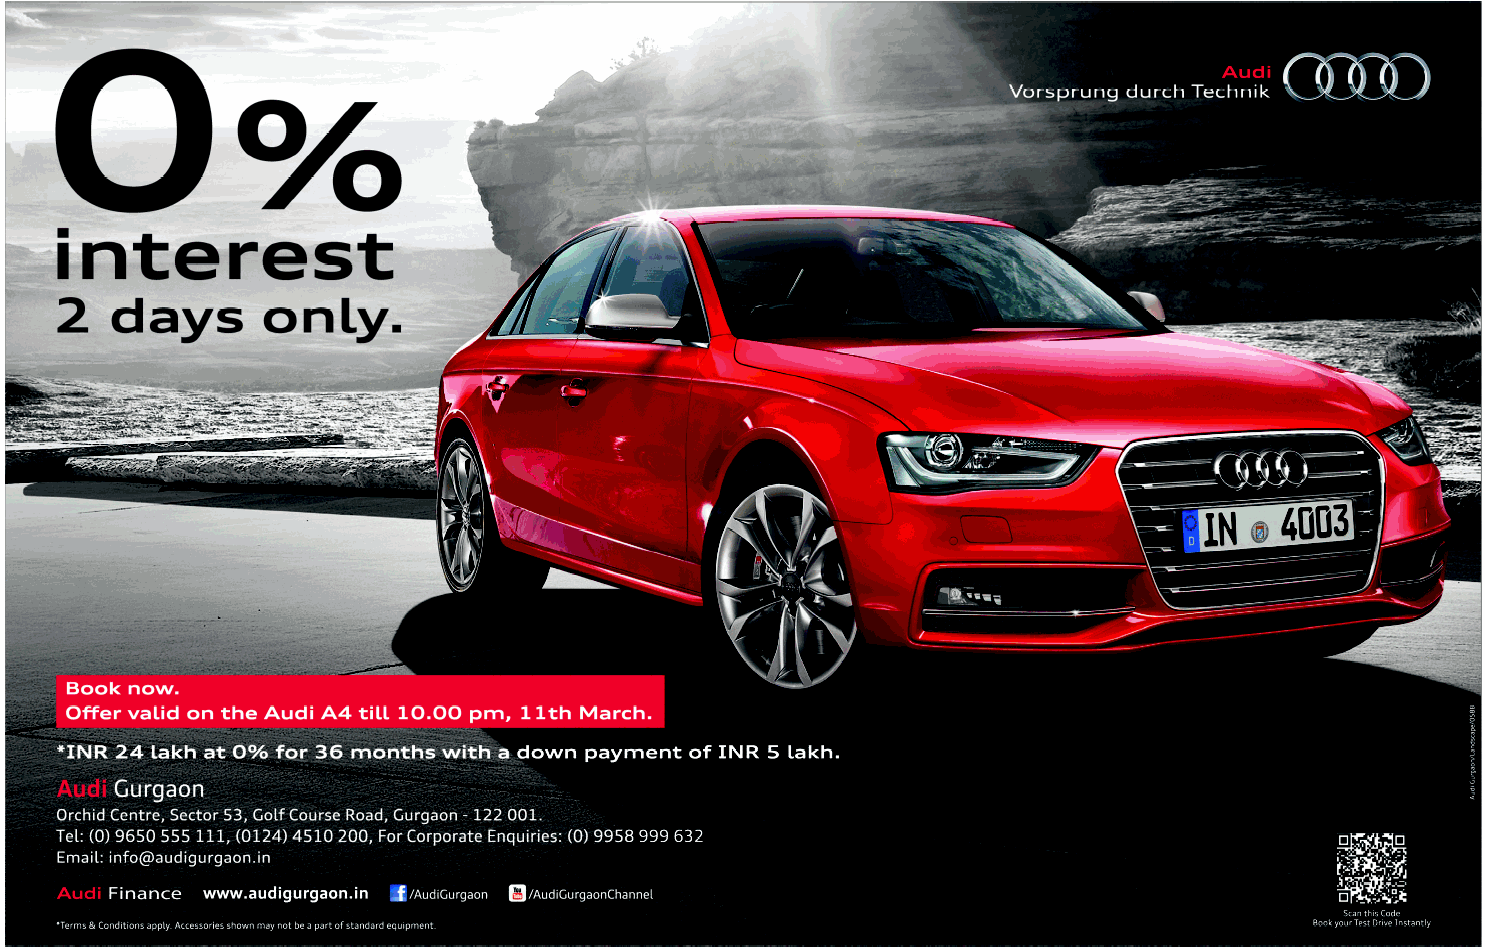 Audi AD Photos, Informations, Articles - BestCarMag.com